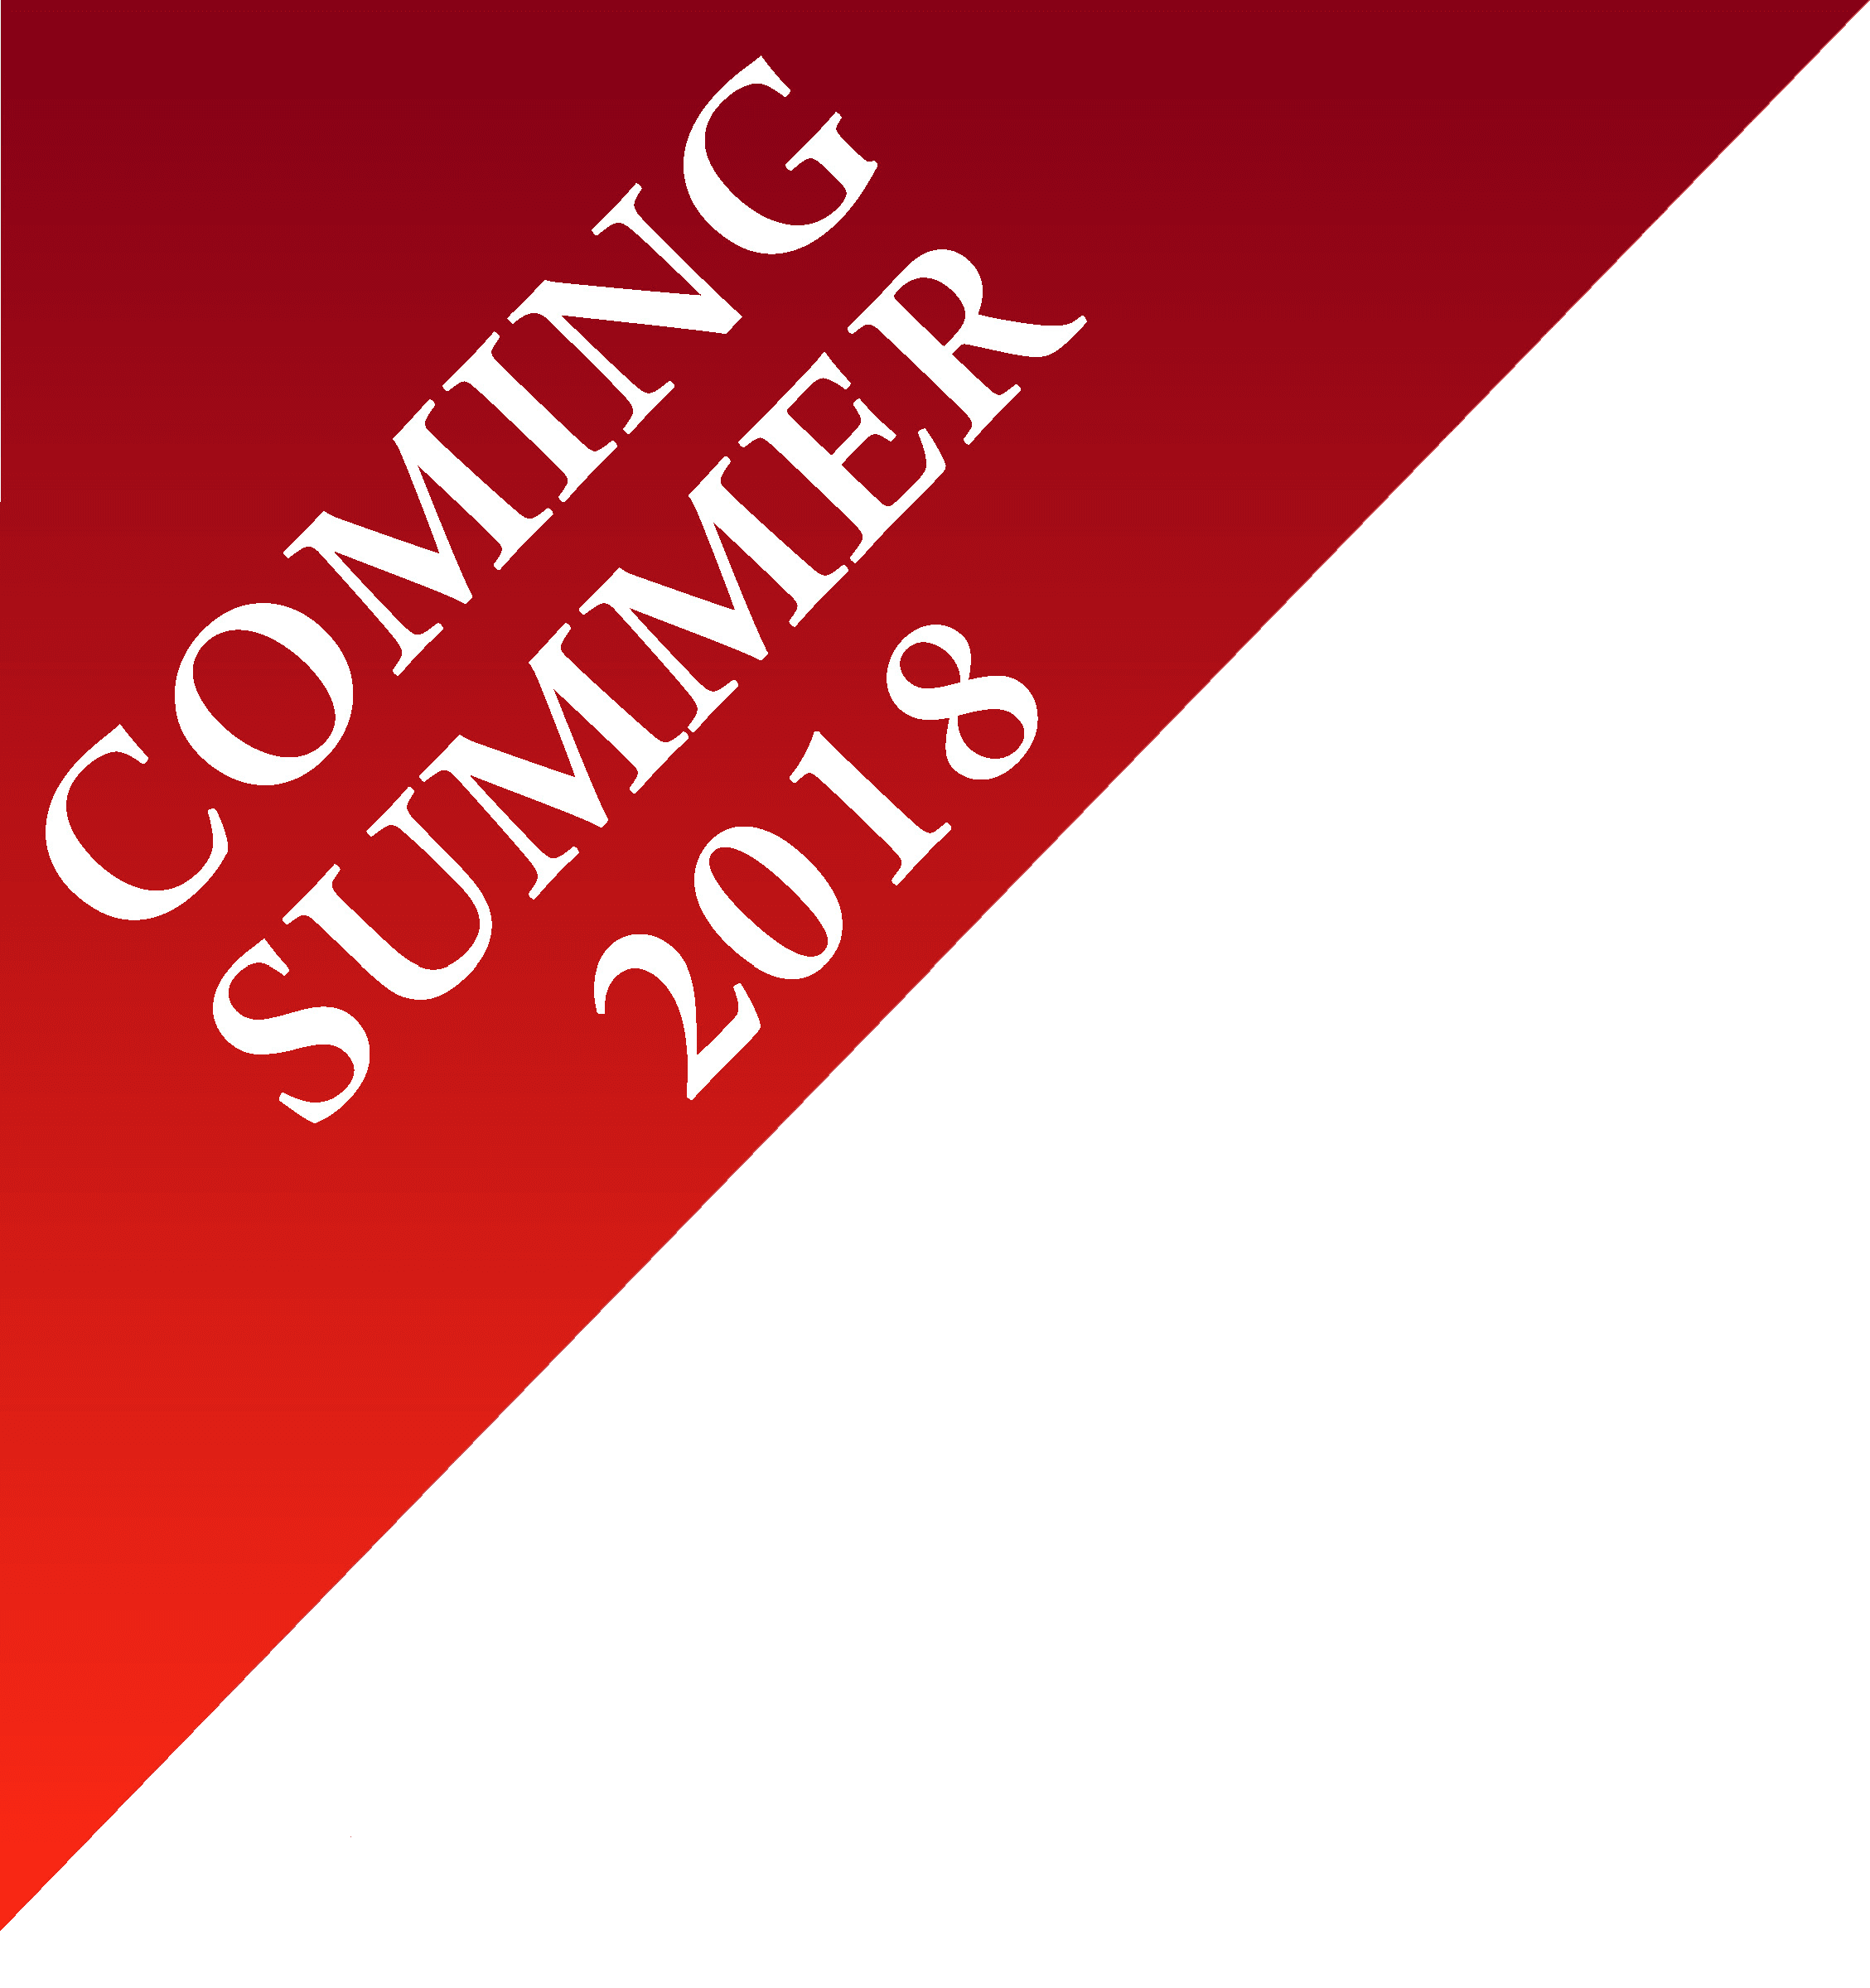 Coming Summer 2018